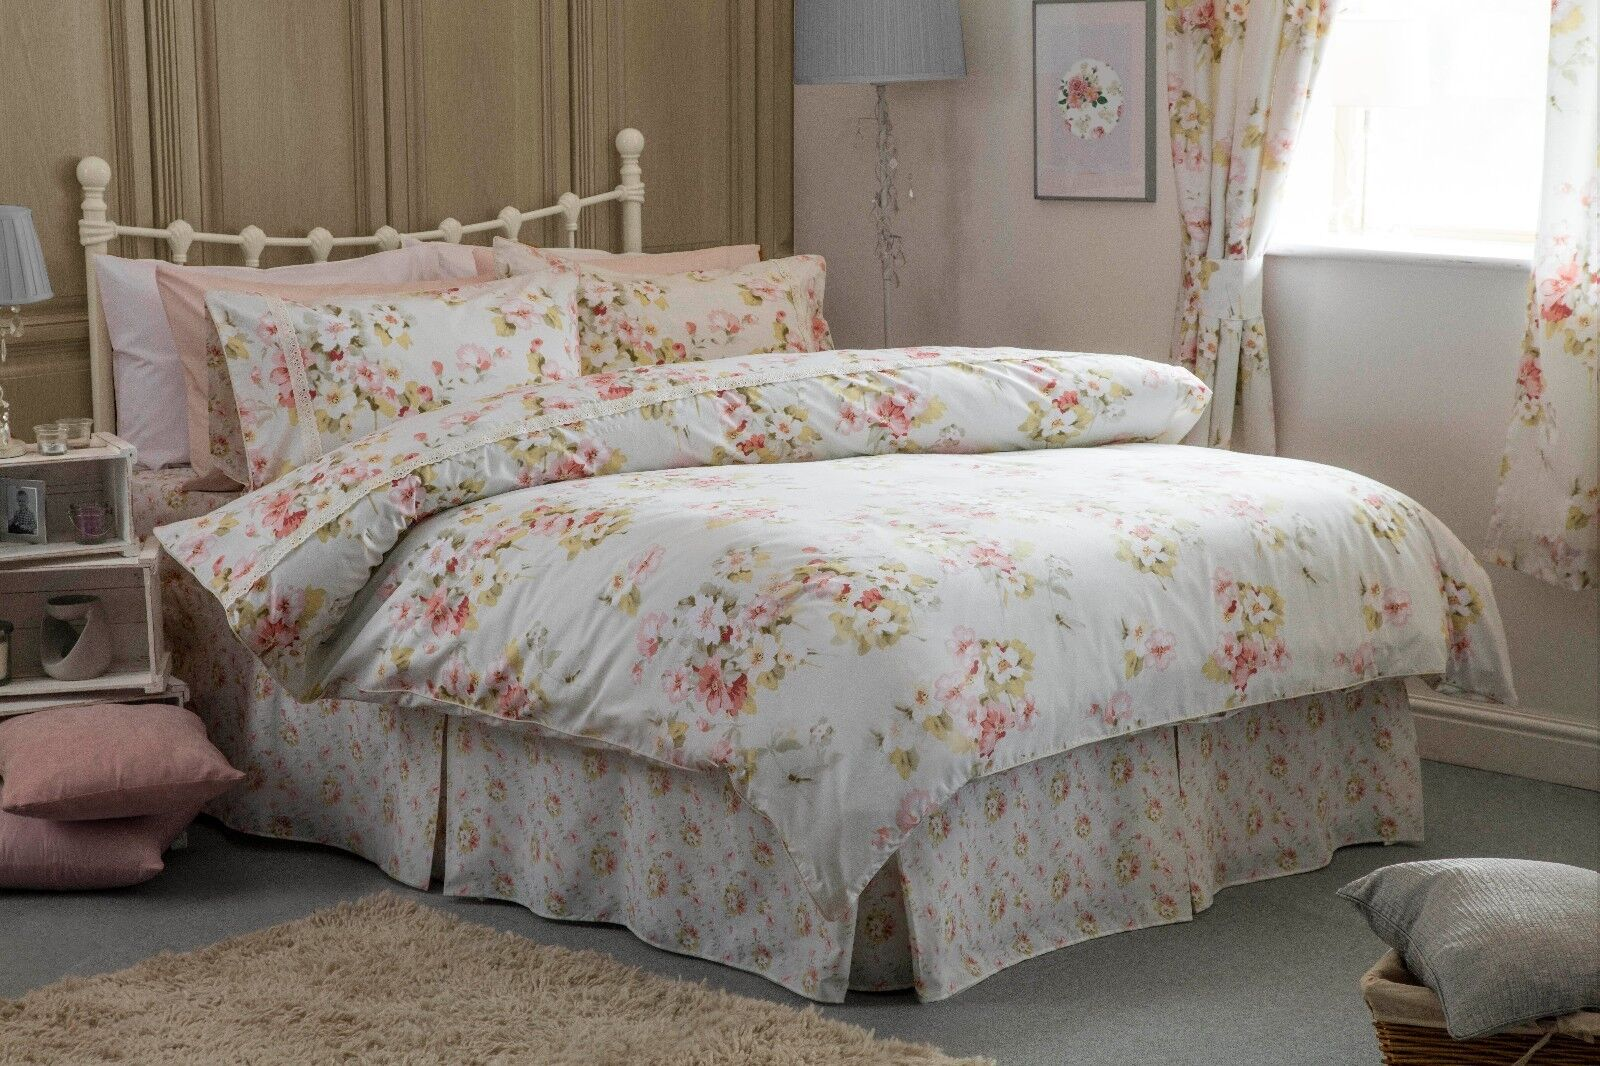 Country Diary Style Blossom Duvet Cover, Bedspread, Fitted Valance, Curtains